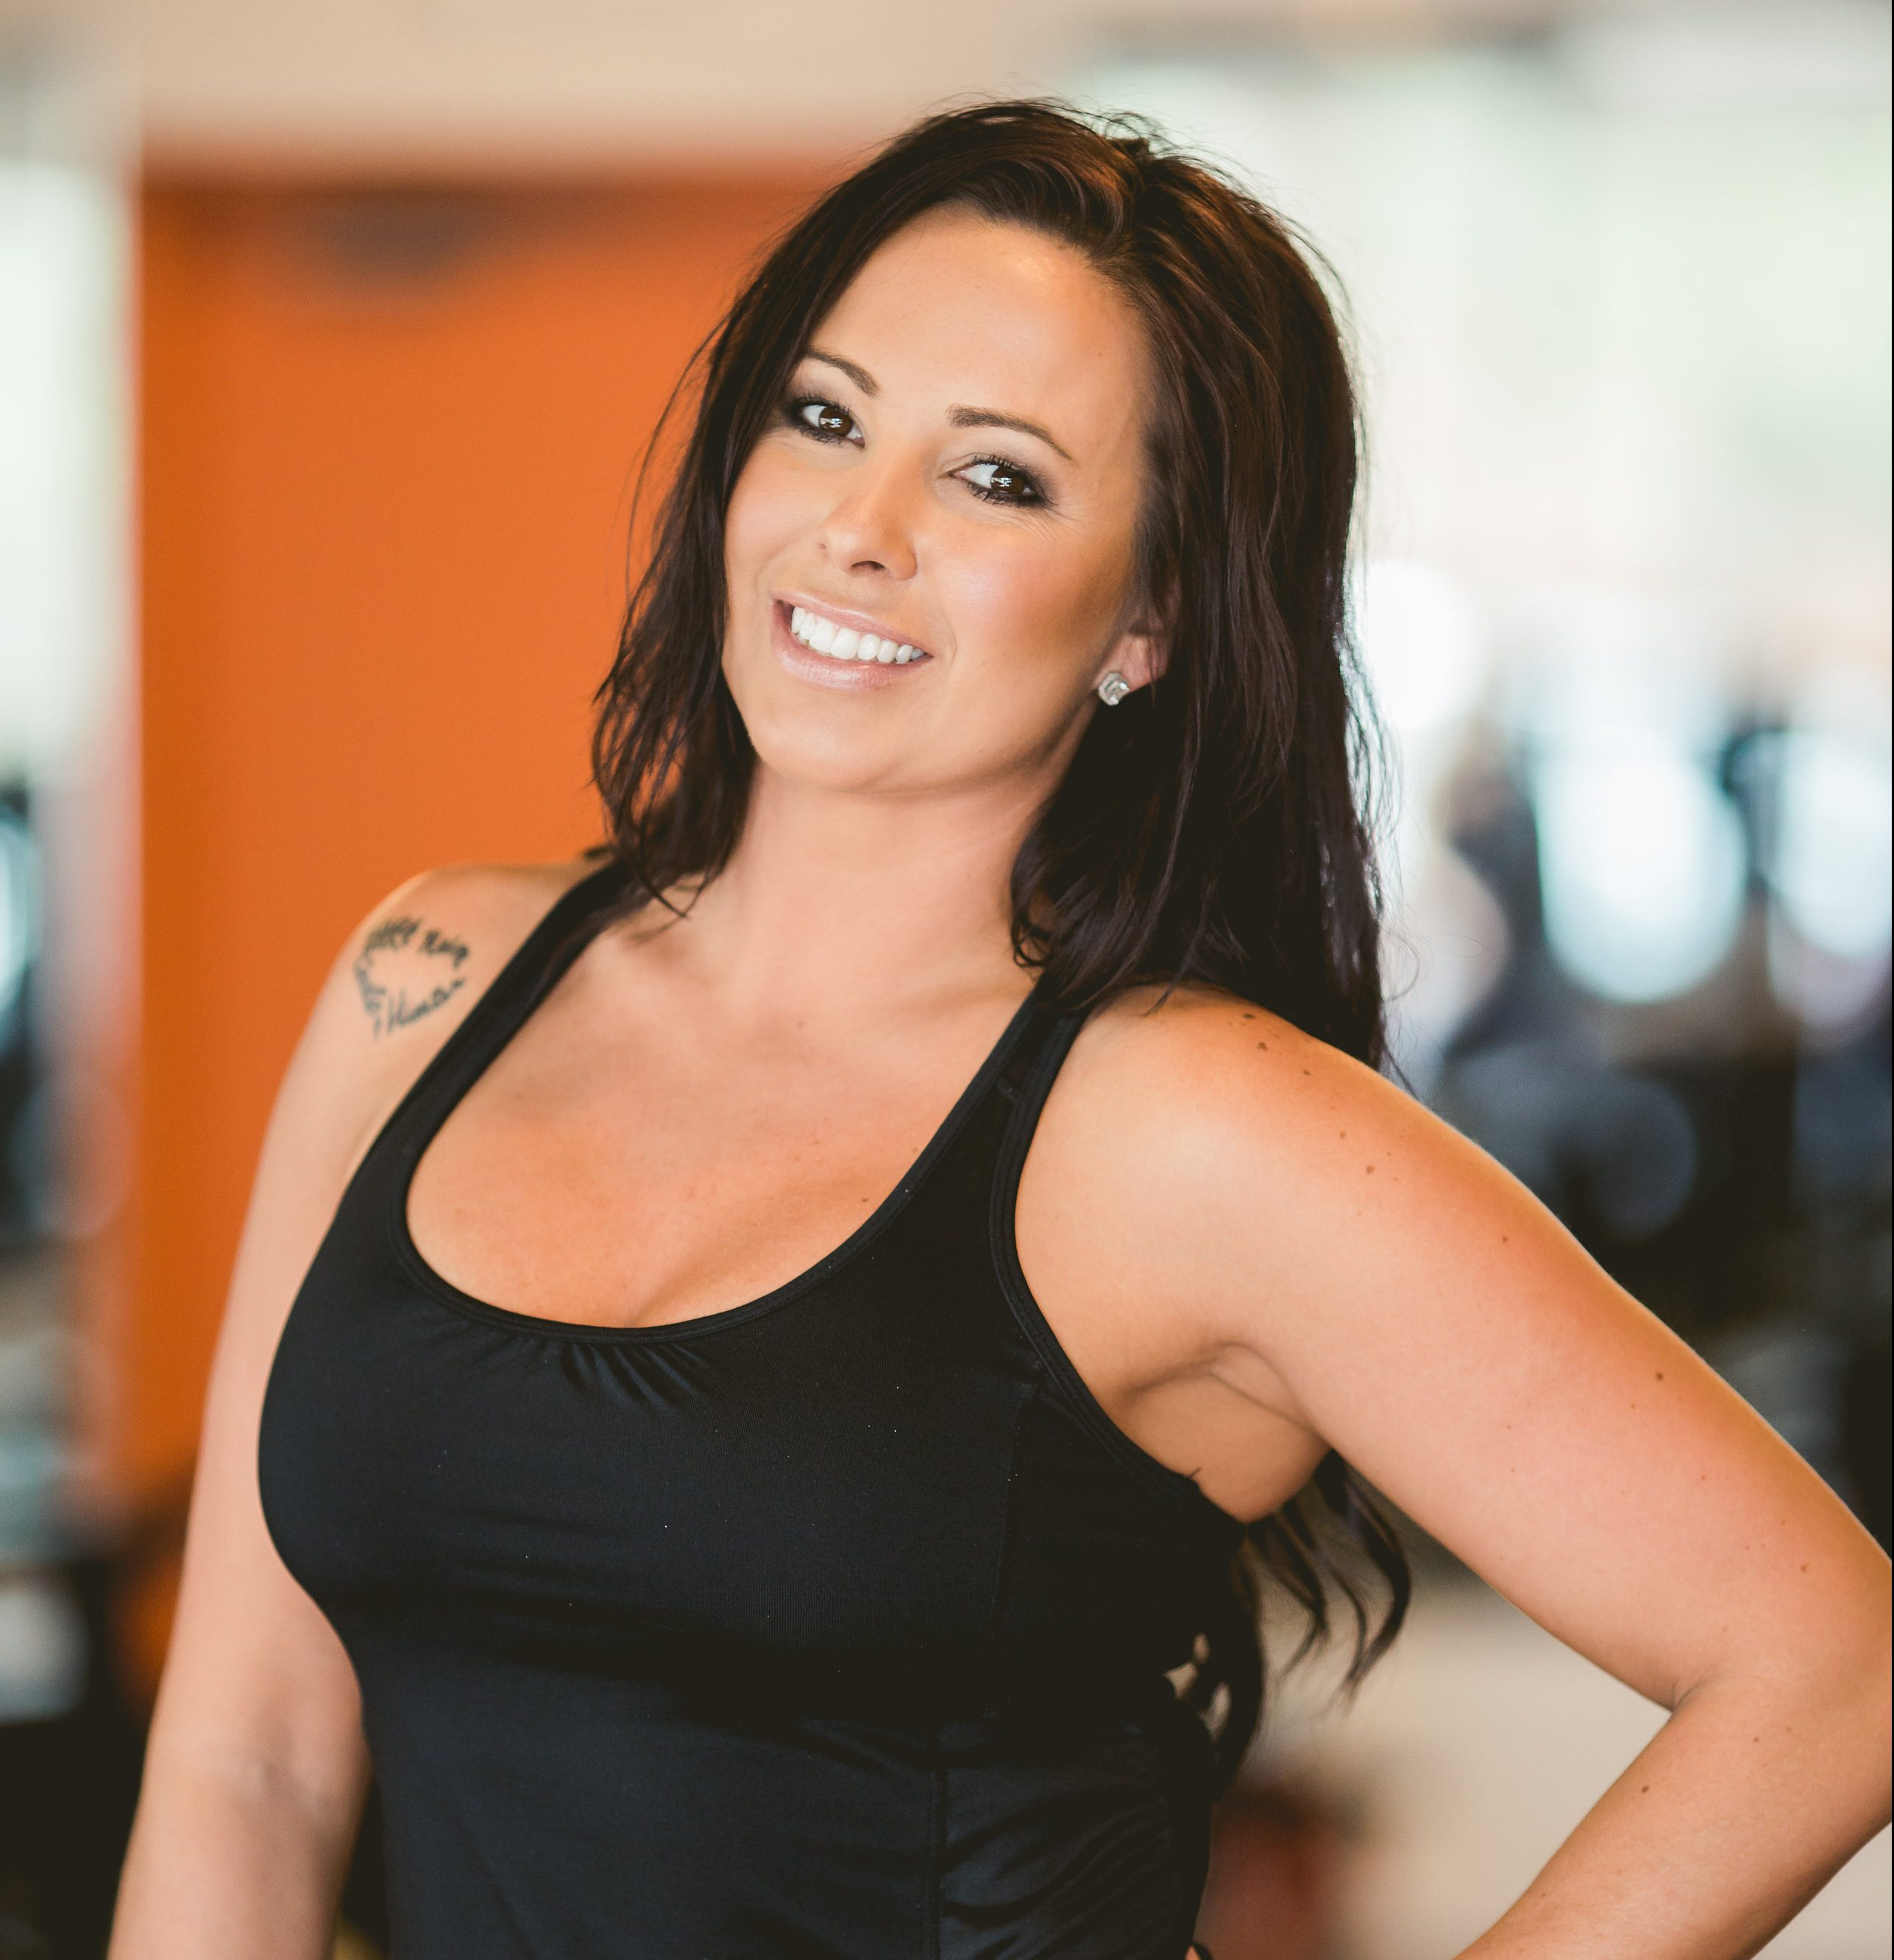 Fit women for dating houston